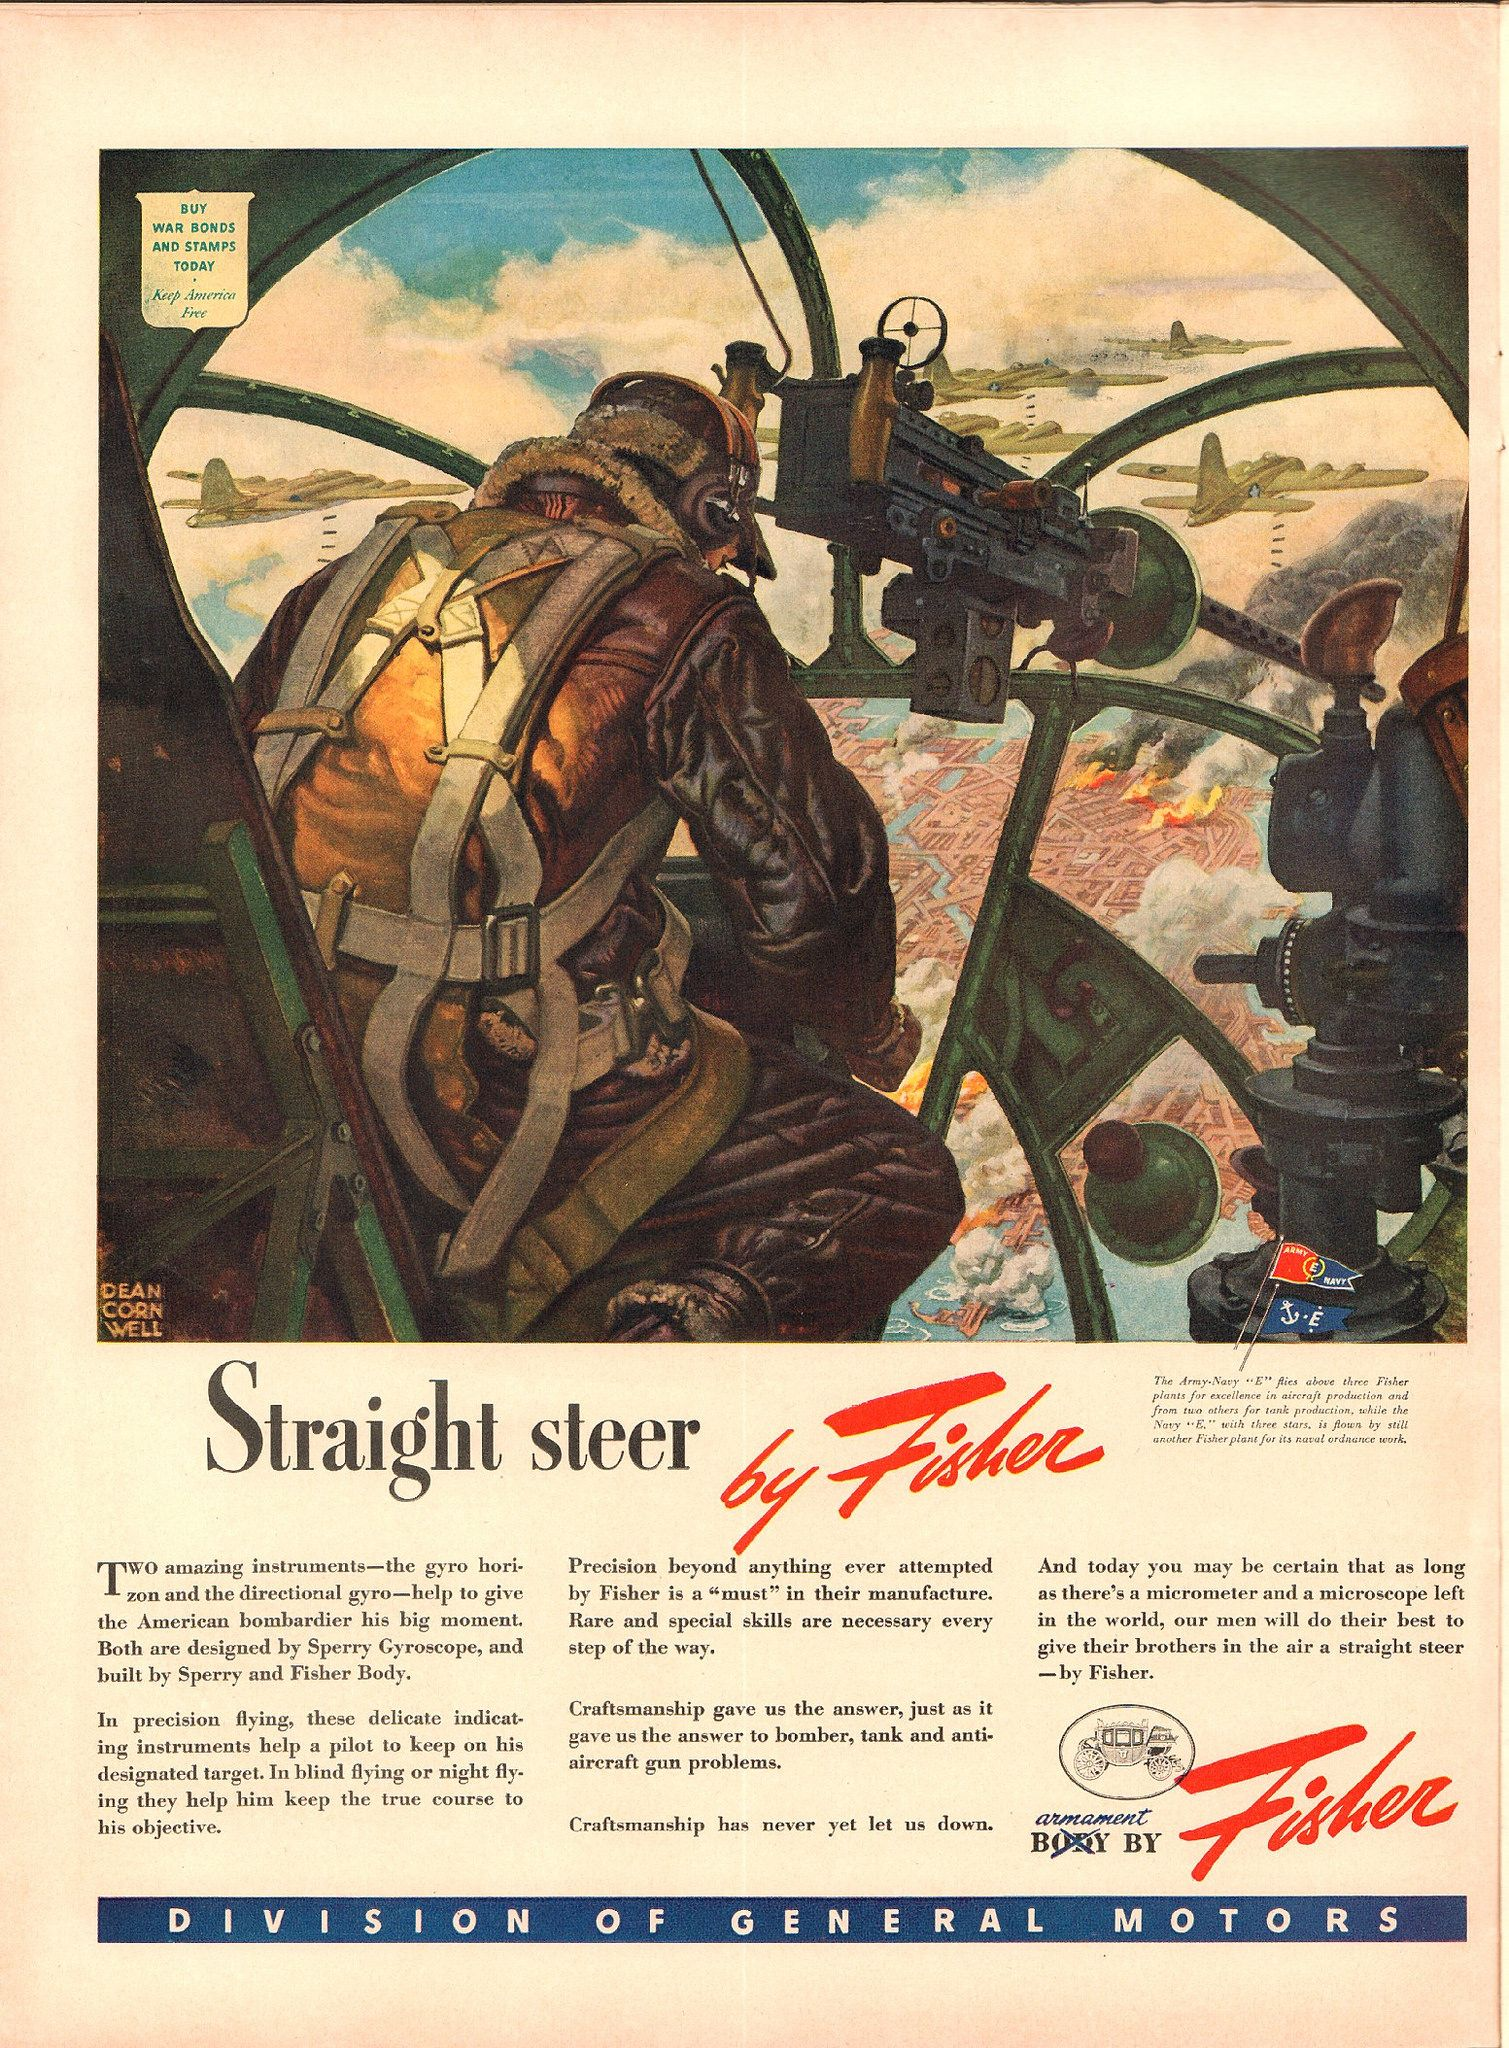 1943 General Motors / Fisher WWII Advertisement   published in Life Magazine September 13 1943